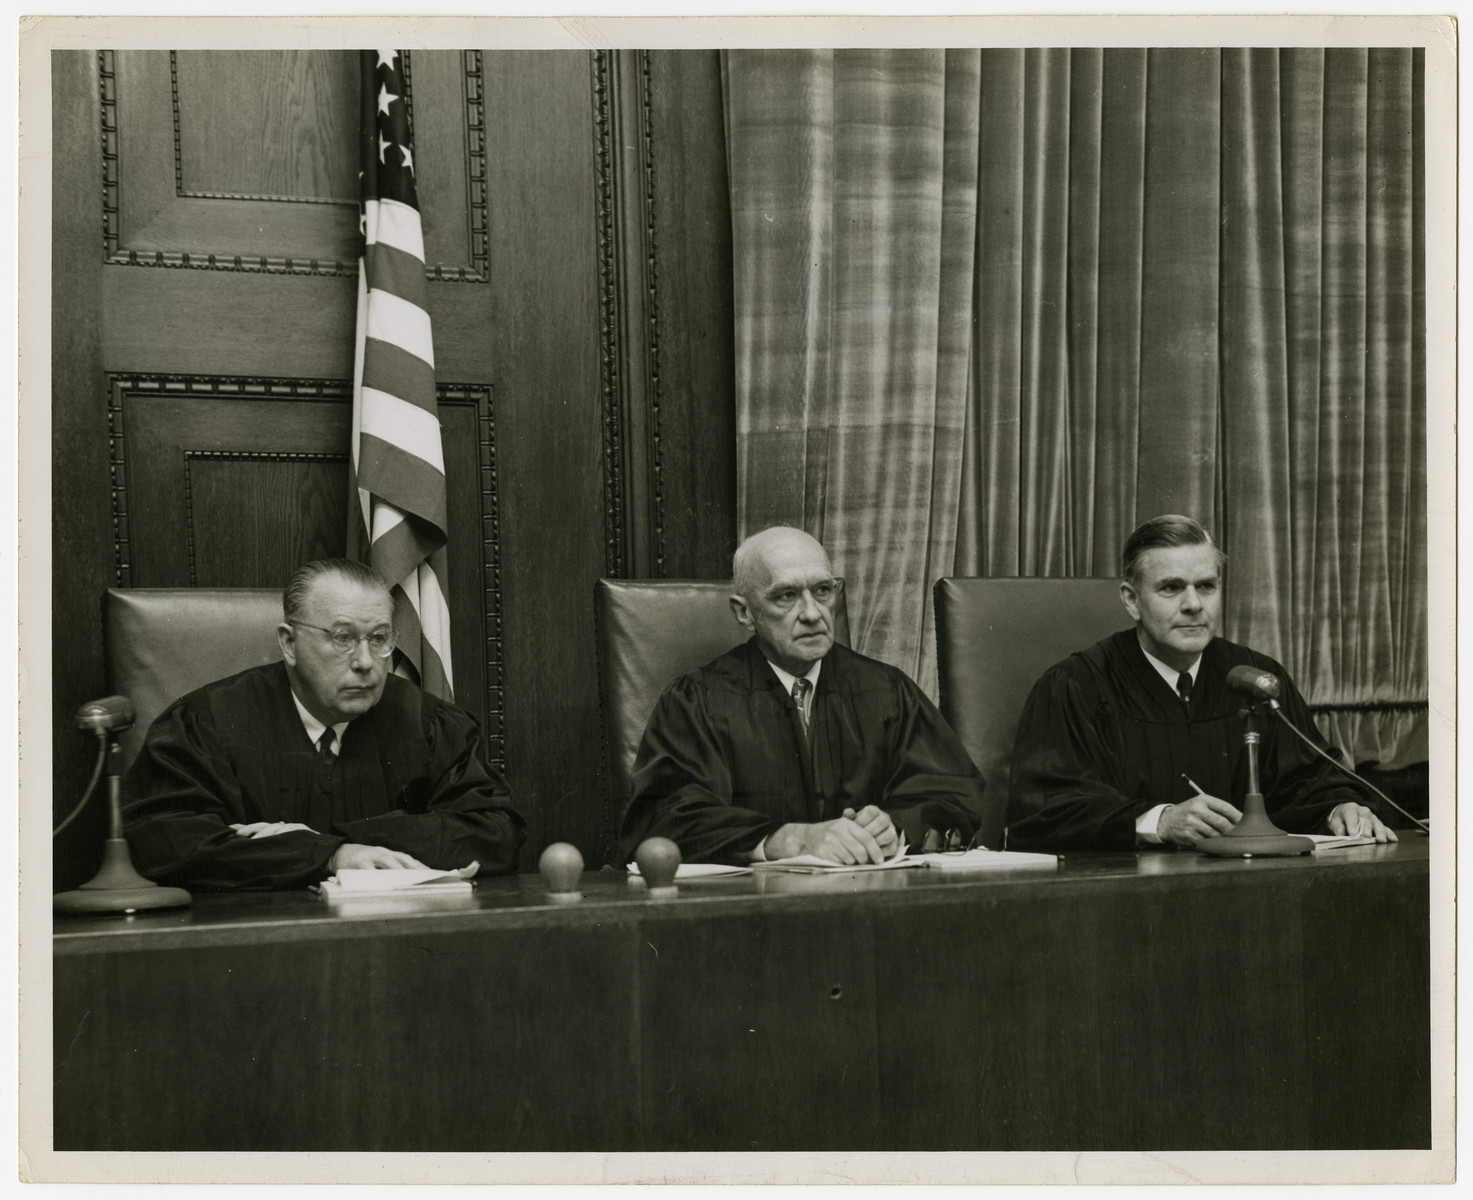 Close-up view of the judges bench during the Krupp Tribunal,.  From eft to right are Edward J Daly, Hu C Anderson and William J. Wilkins.